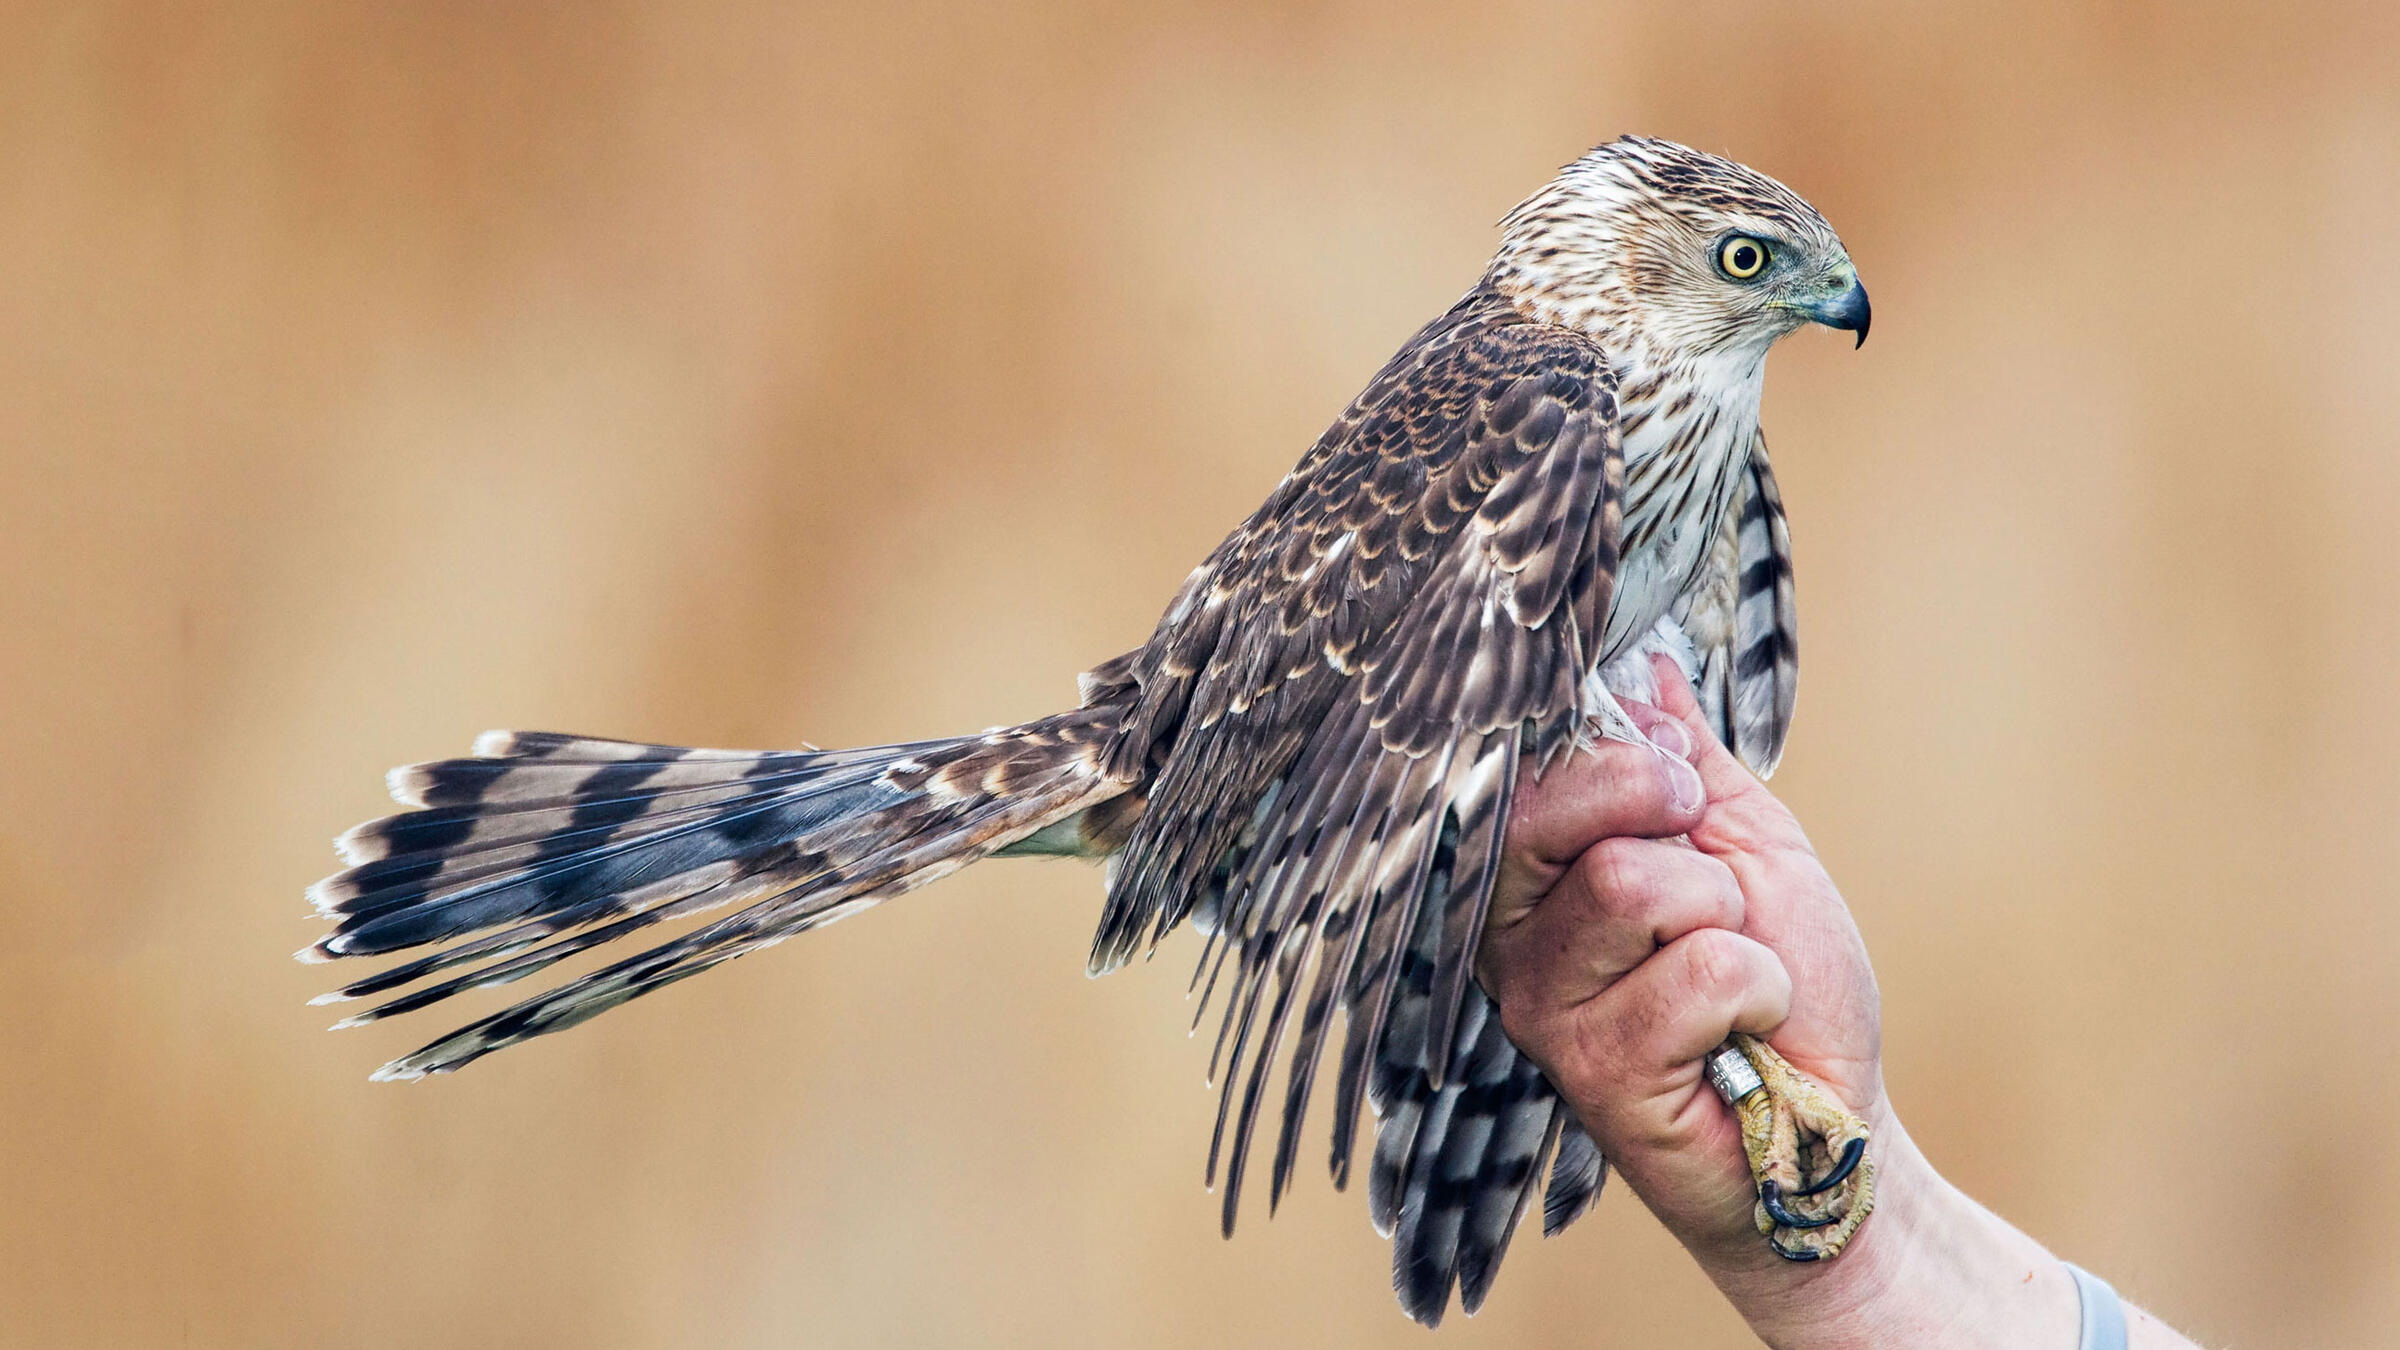 A simple numbered ring, like the one on this Cooper's Hawk, can help scientists track trends in avian populations. But getting a band on a raptor also takes a lot of skill. Harold Stiver/Alamy